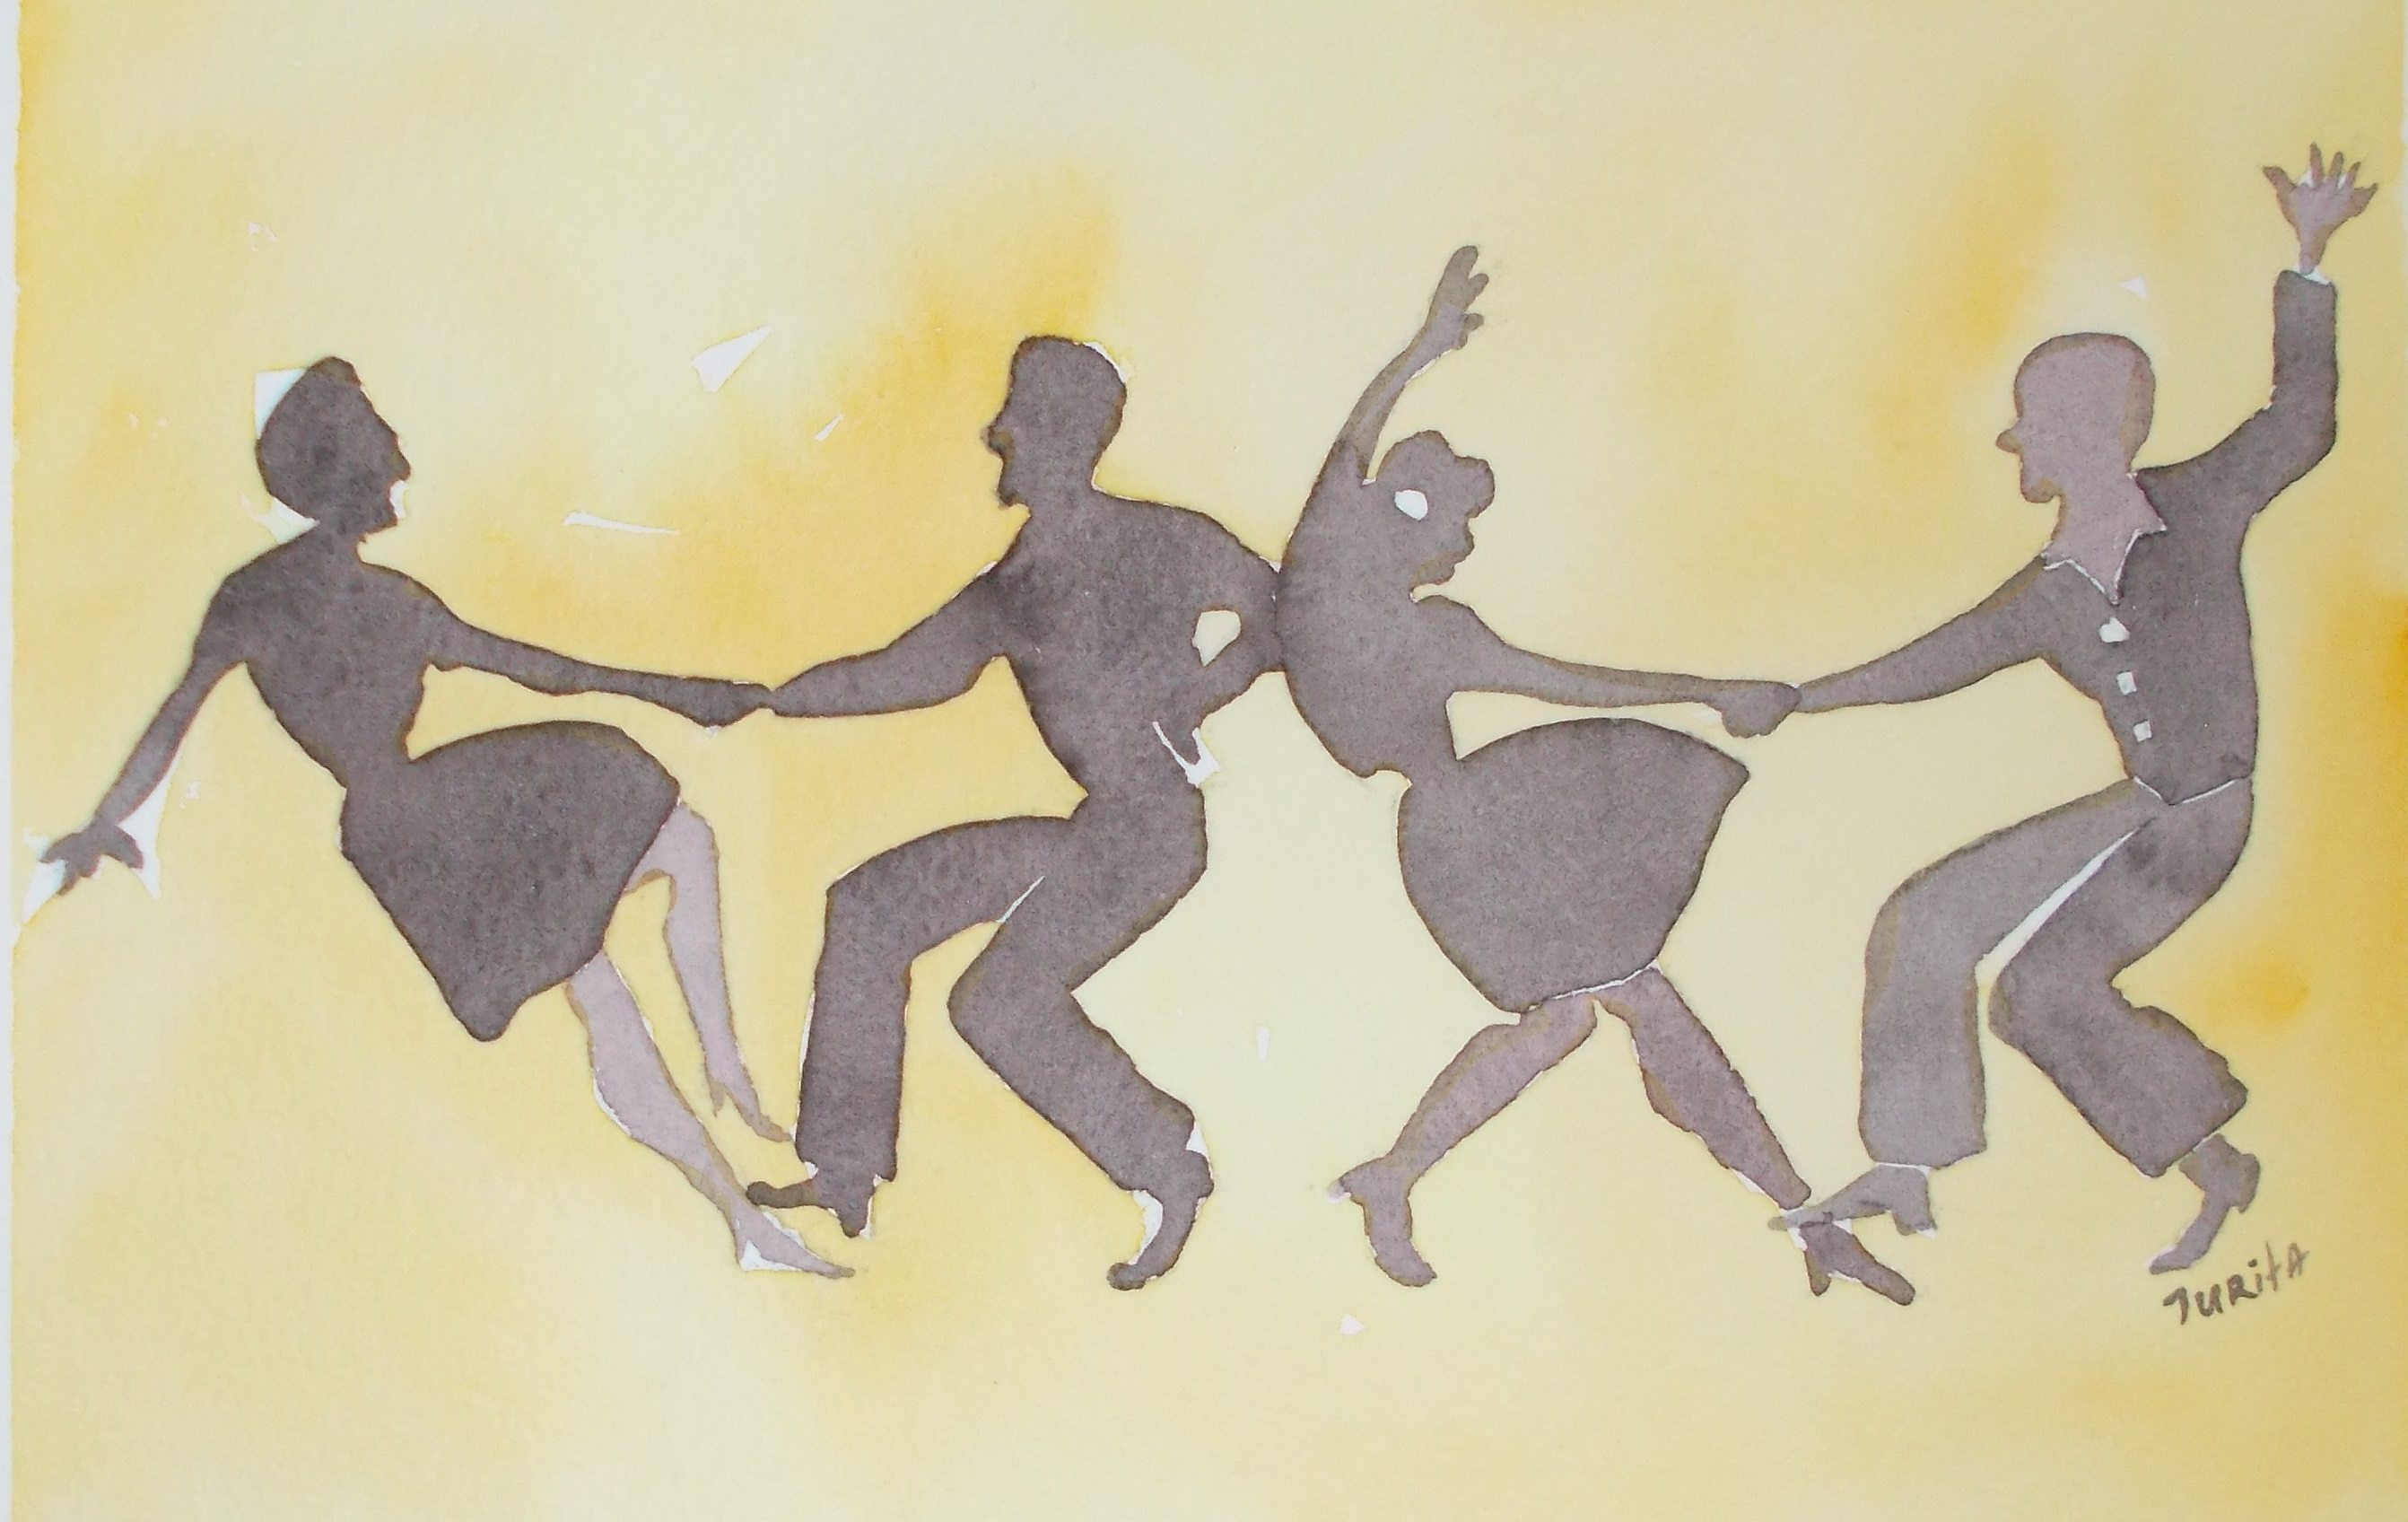 Jazz dance of four, Jurita Kalite, 2017, Watercolor